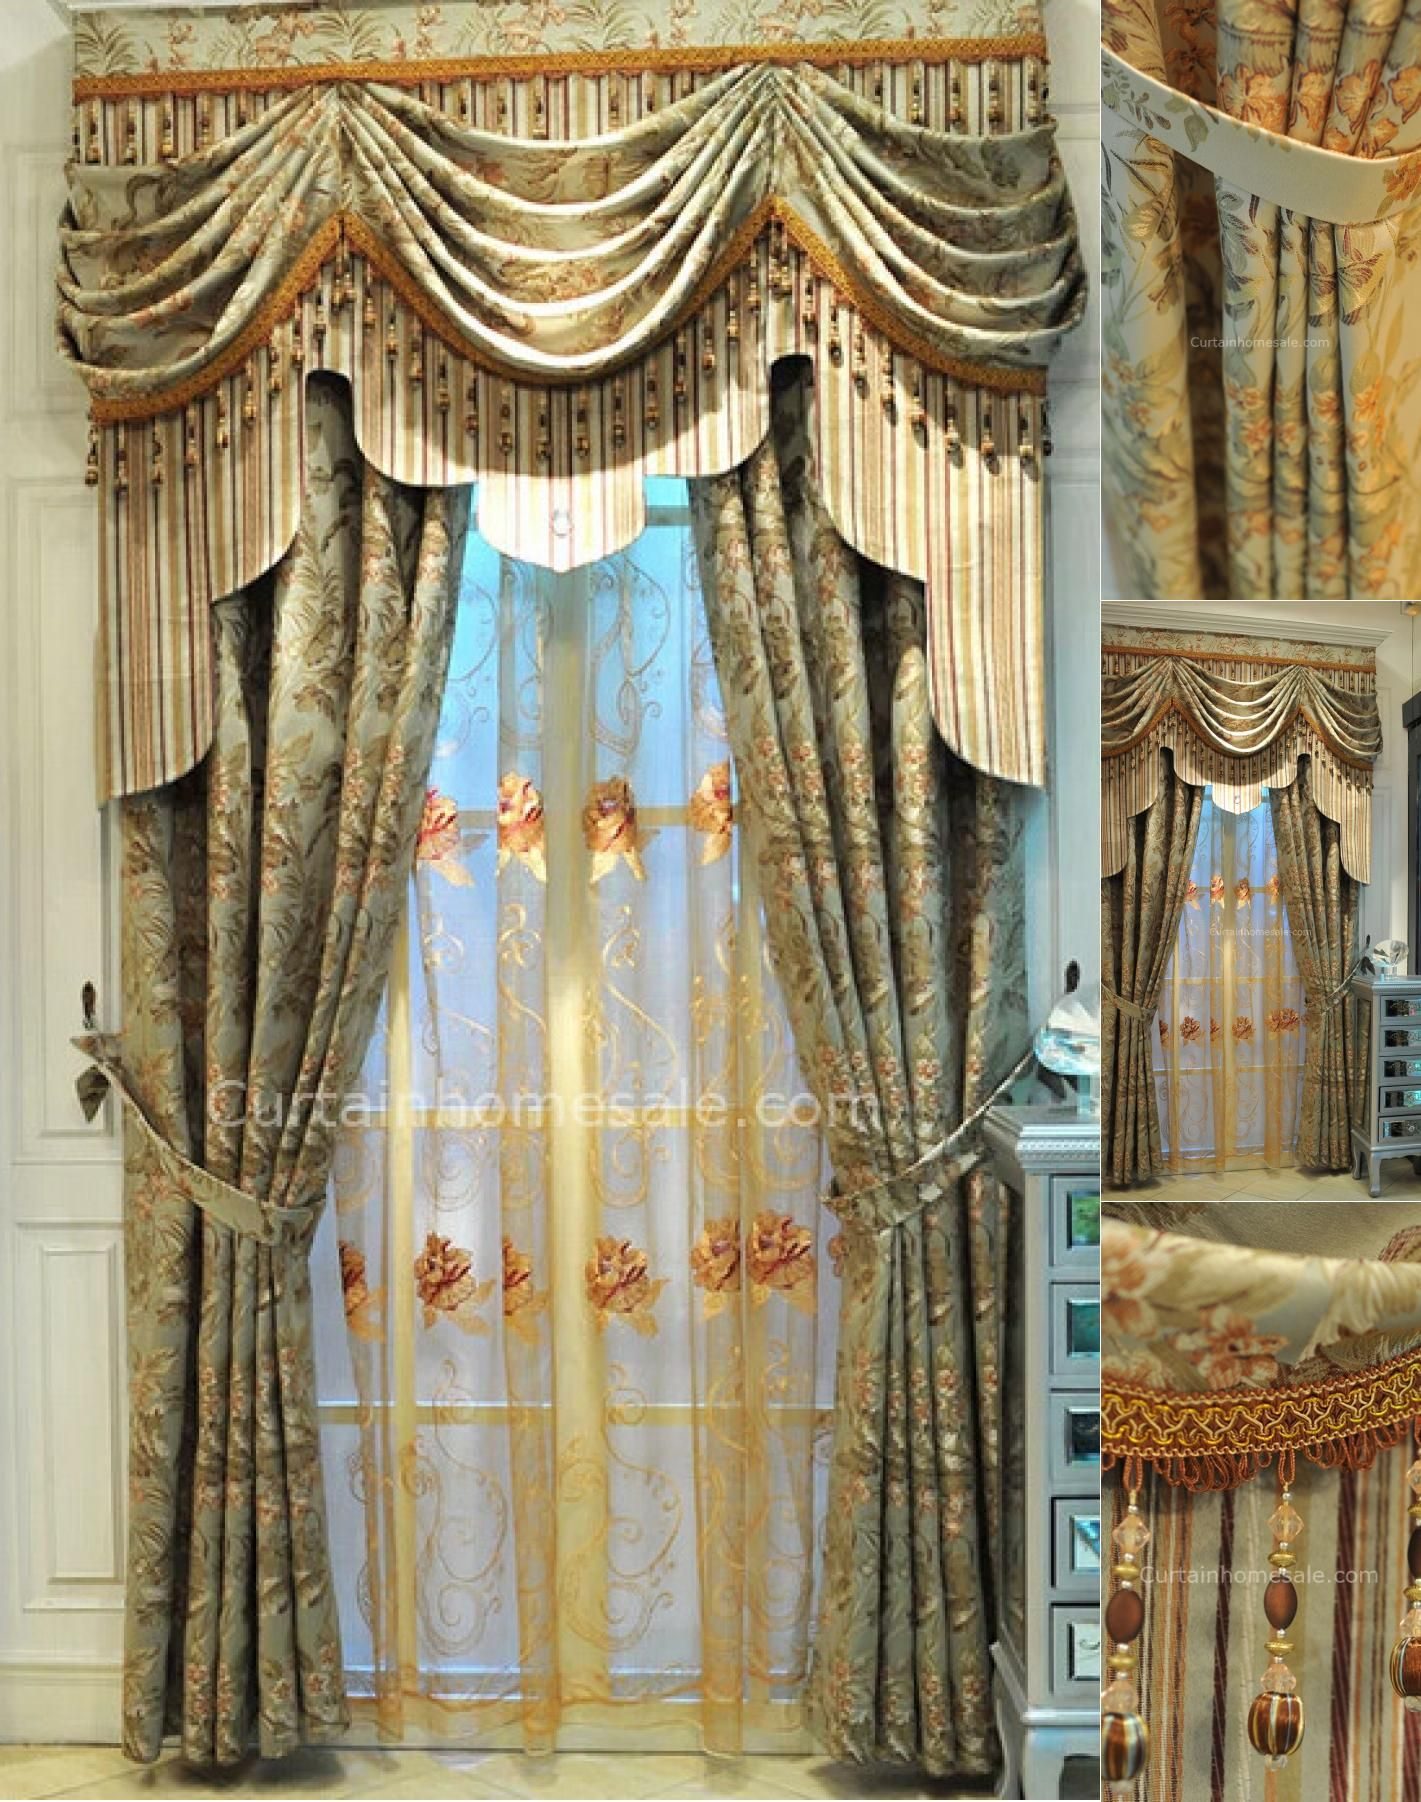 angeles made galaxy valances los valance custom ca in drapery draperies by